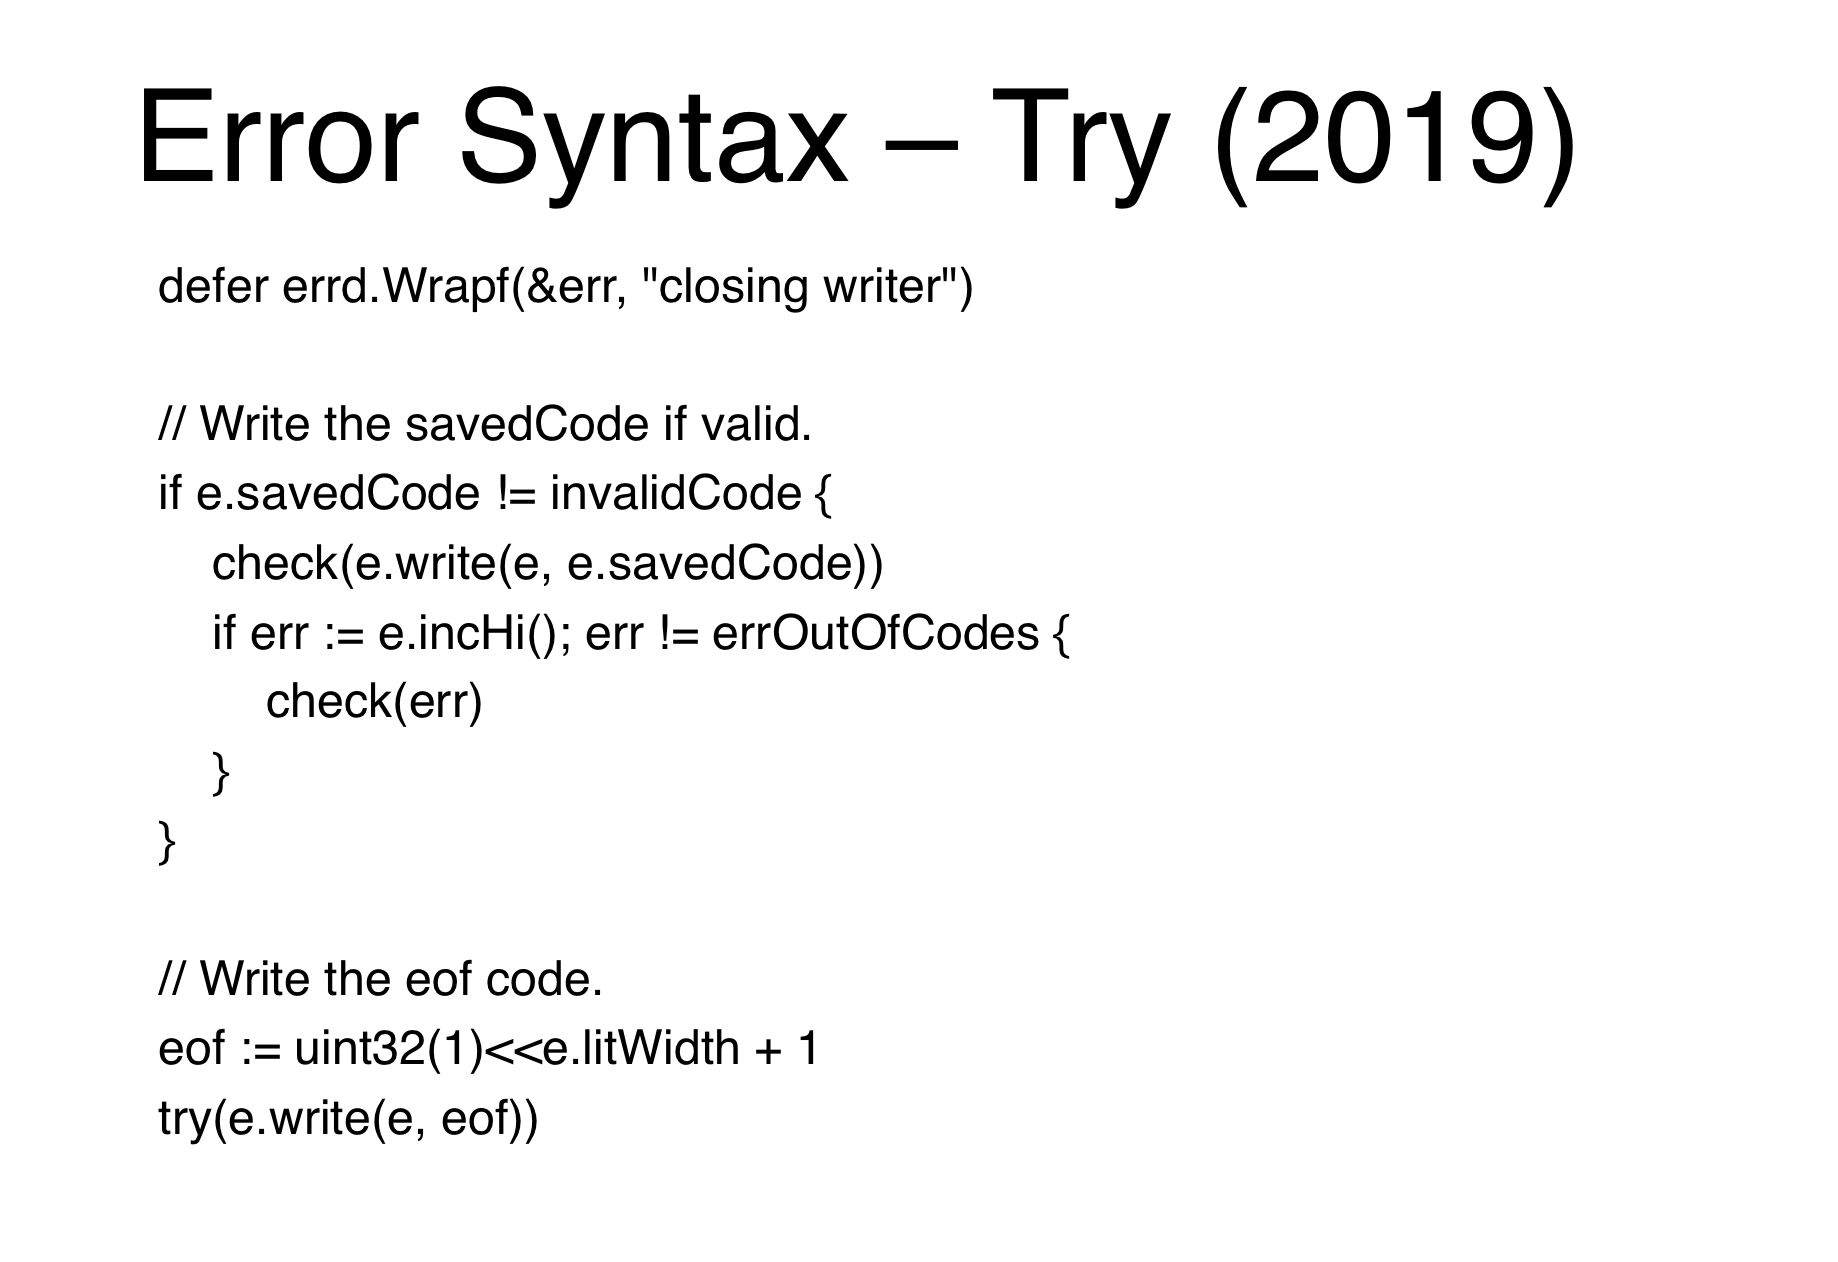 Try Syntax